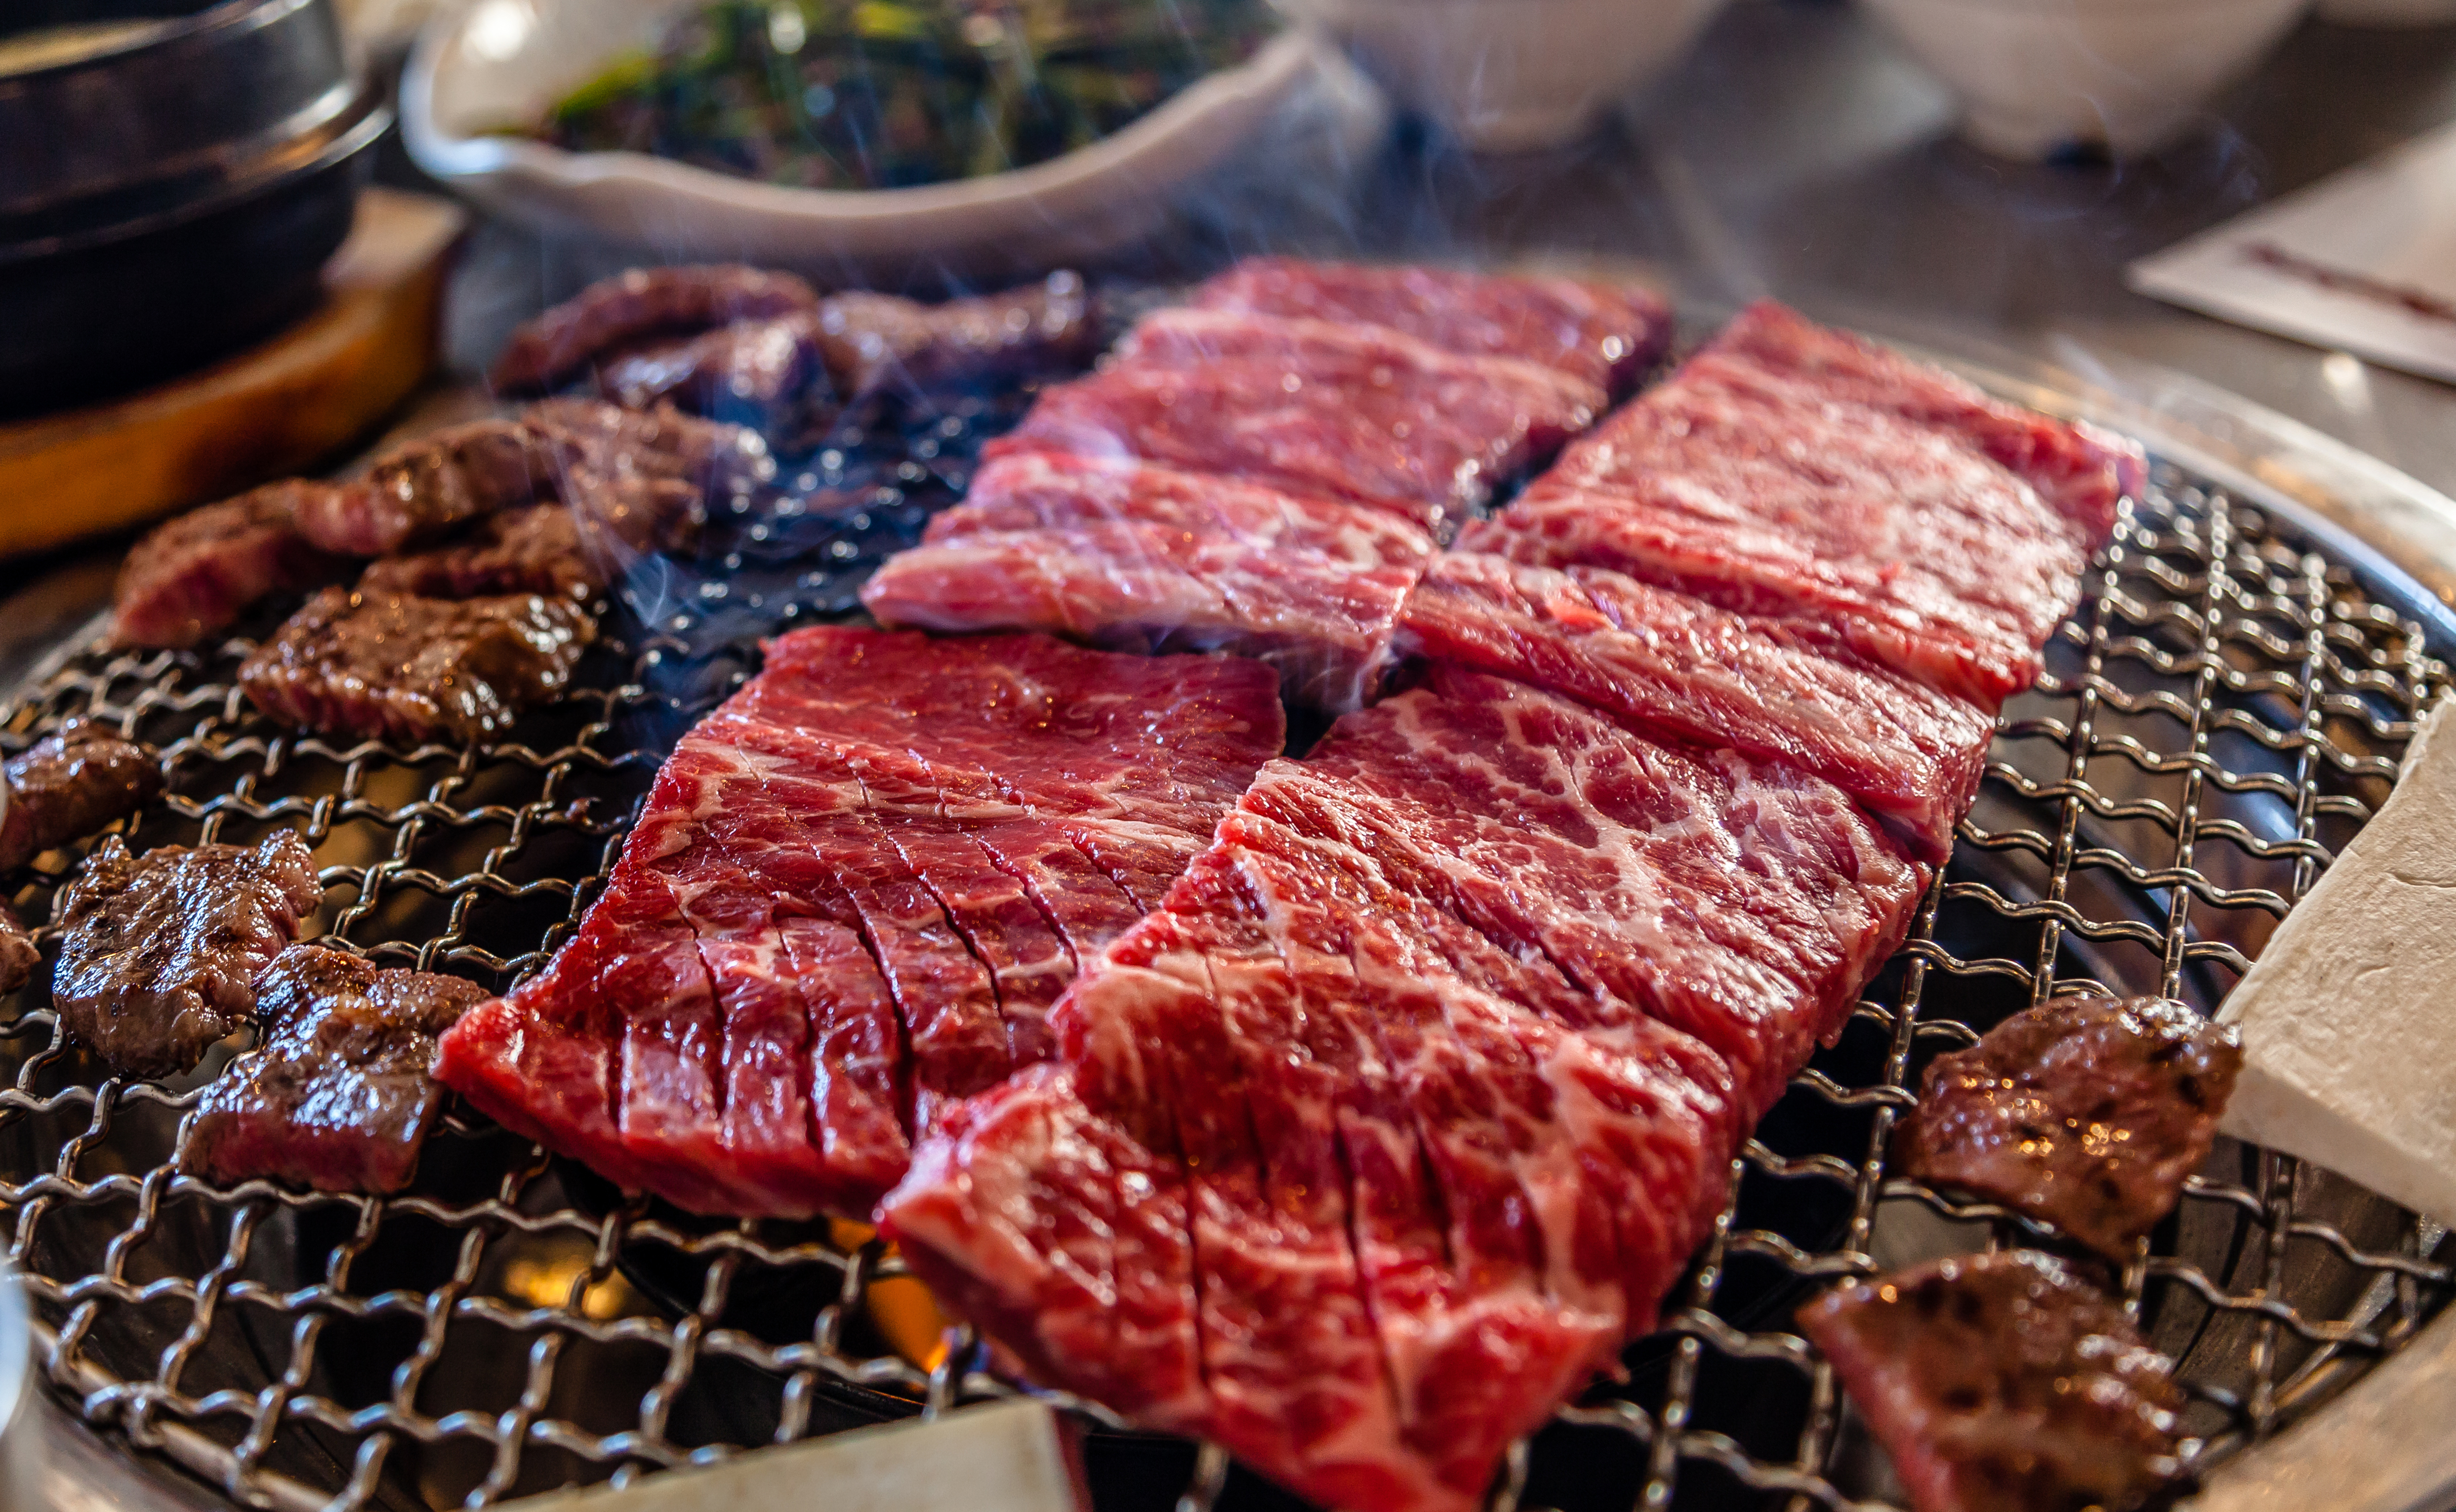 Raw beef cooking on a small grill.